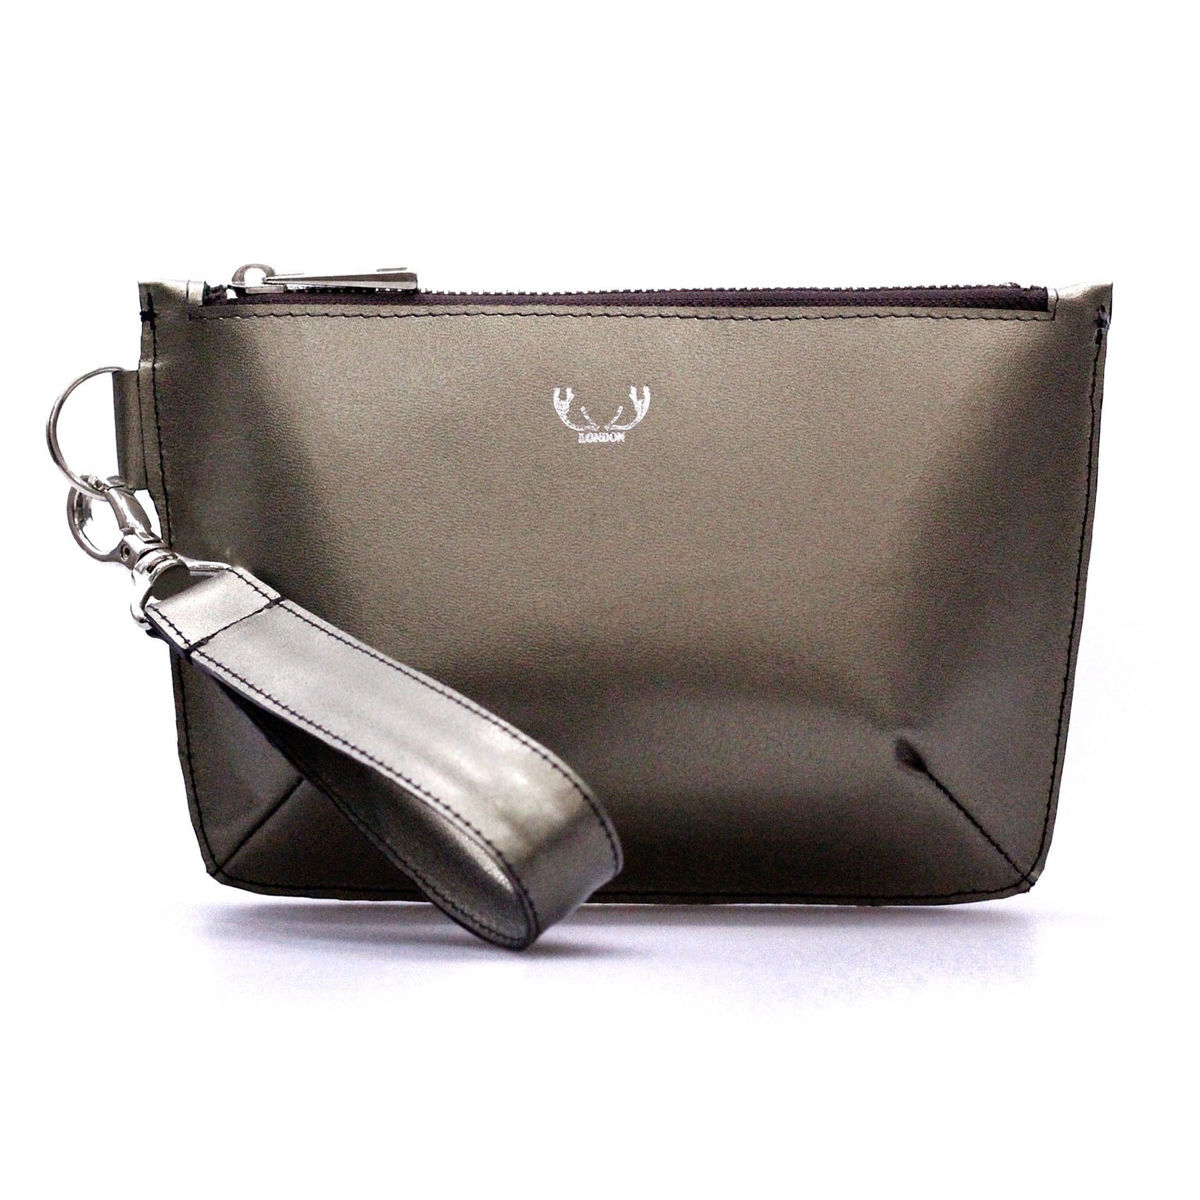 *LIMITED EDITION* Bronze Mini Sienna Clutch bag - product images  of